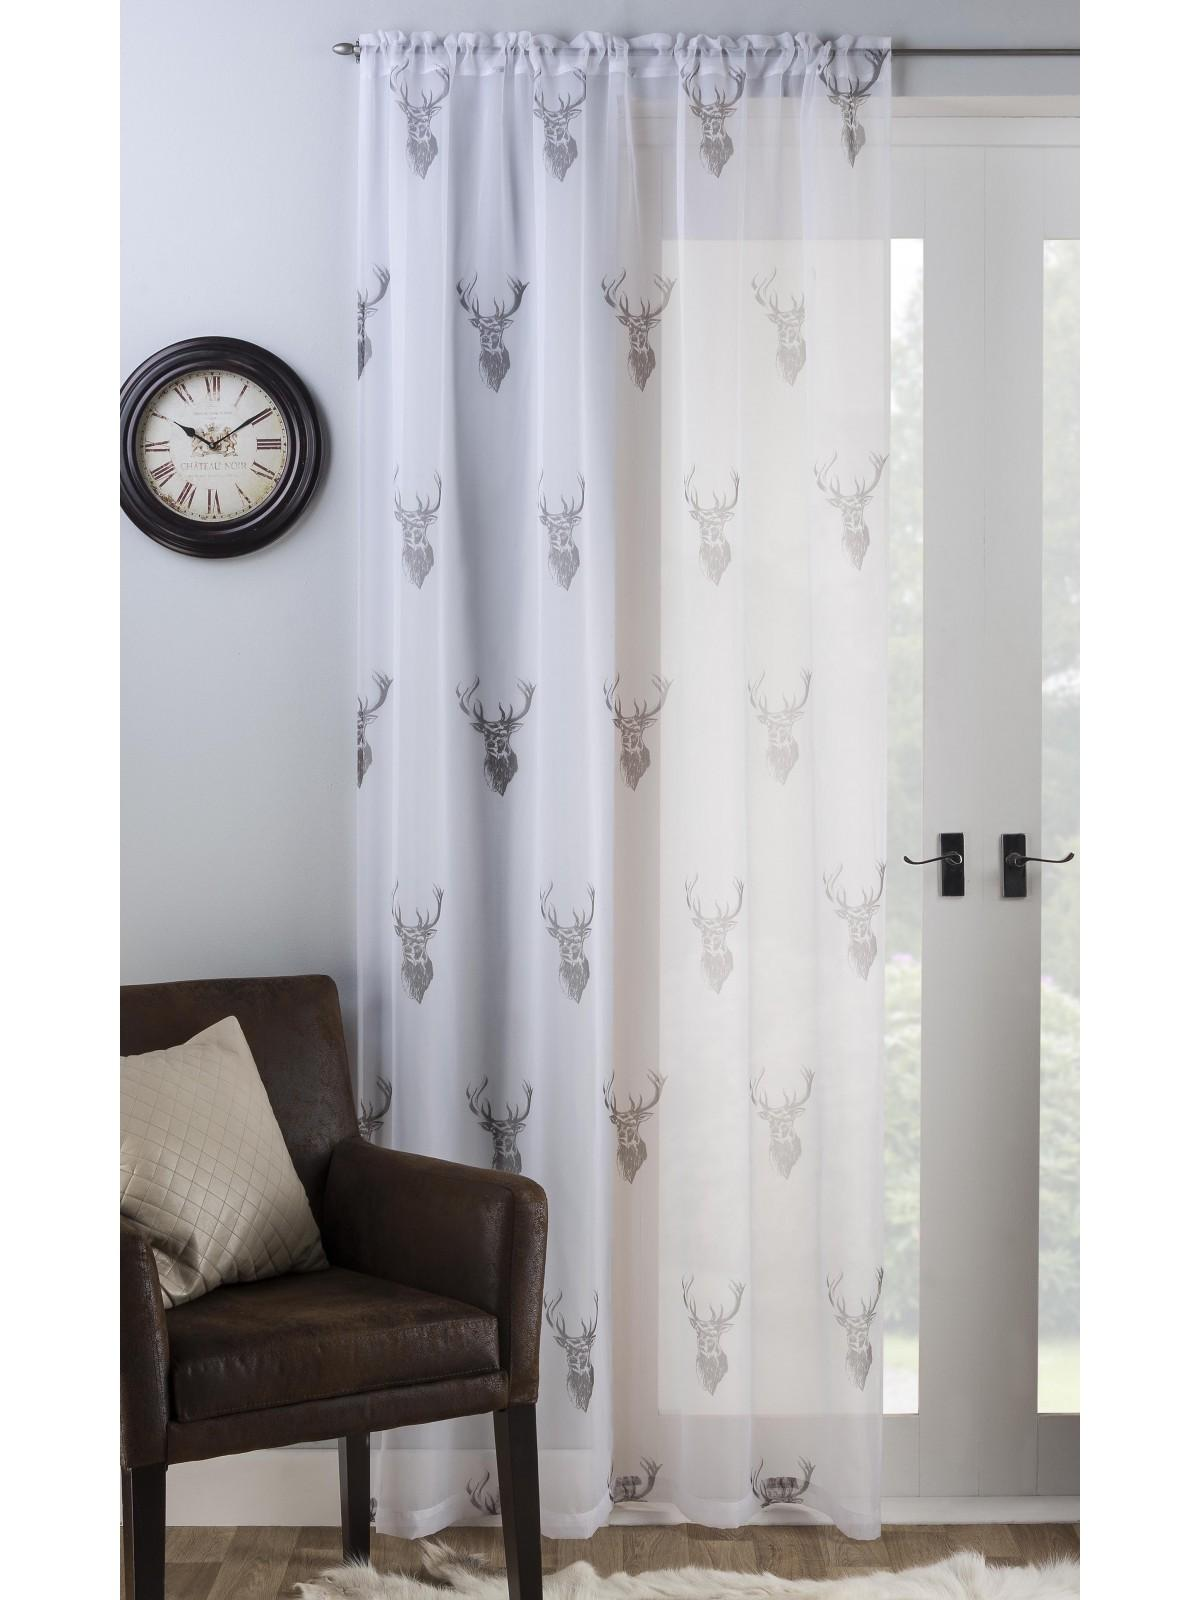 made ring product eyelet symonds voile lined embroidered curtains alan silver ready moda black top